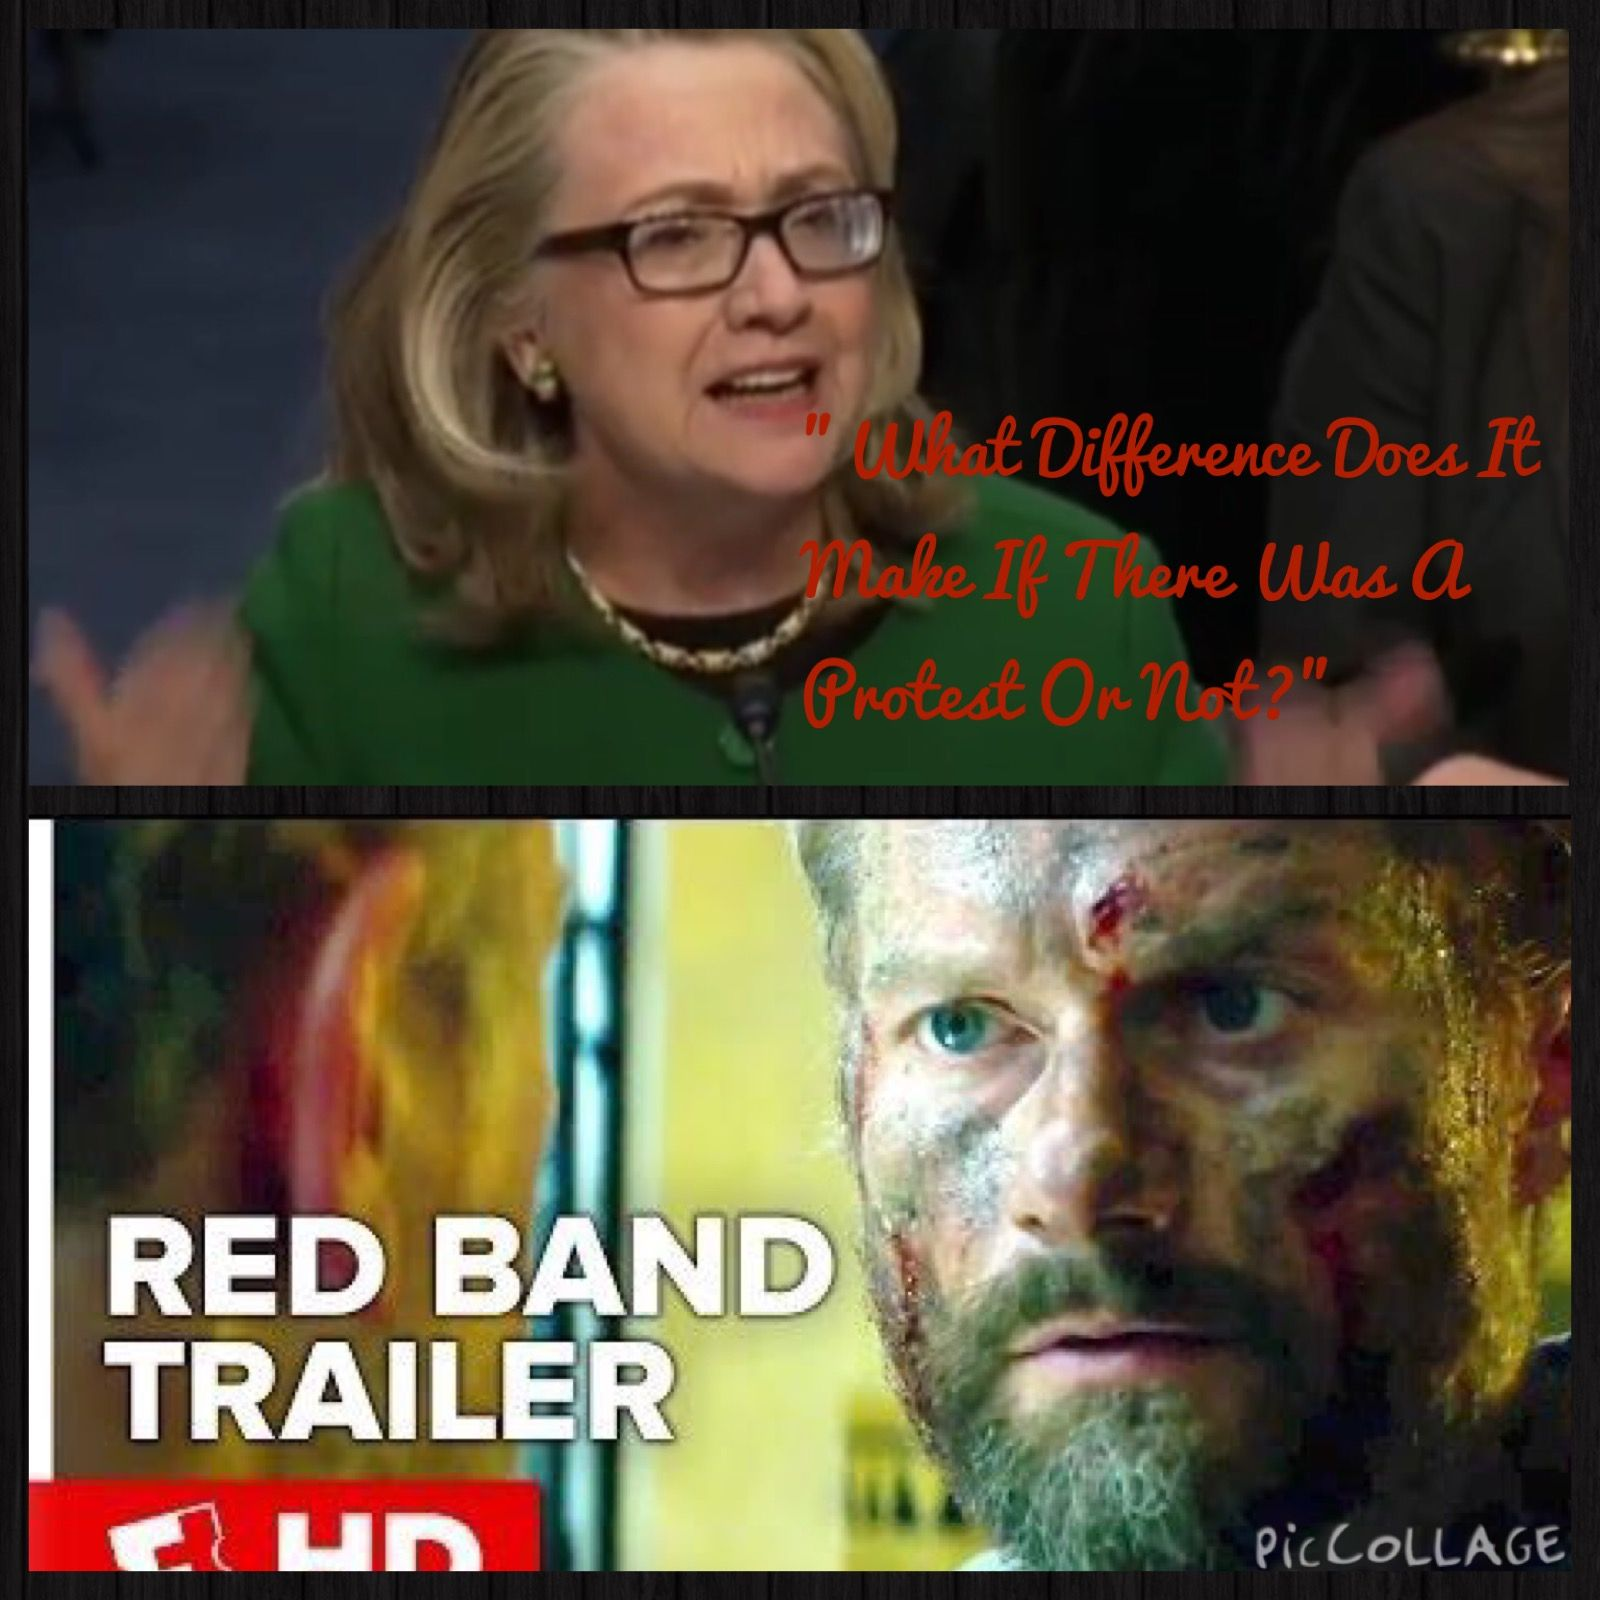 13 Hours: The Secret Soldiers of Benghazi Official Red Band Trailer #2 (2016) - Michael Bay Movie HD - YouTube http://youtu.be/1ikV32zwVOg